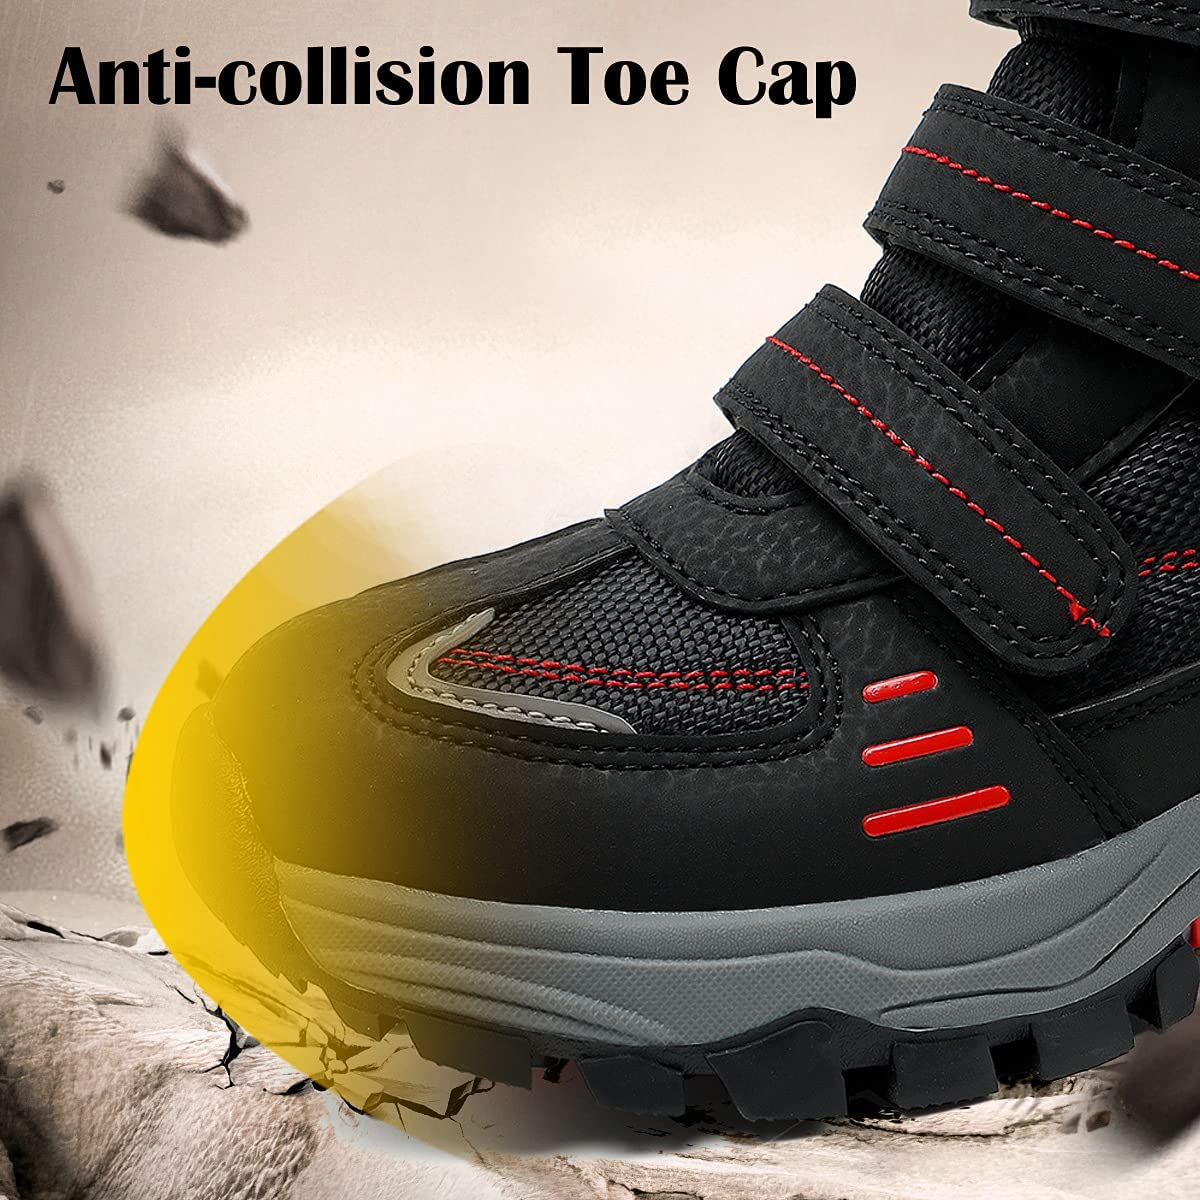 Boys Hiking Boots Kids Hiking Shoes Girls Outdoor Warm Winter Snow Boots Adventure Trekking Shoes Anti-skid Sneakers Steel Buckle Durable Comfortable